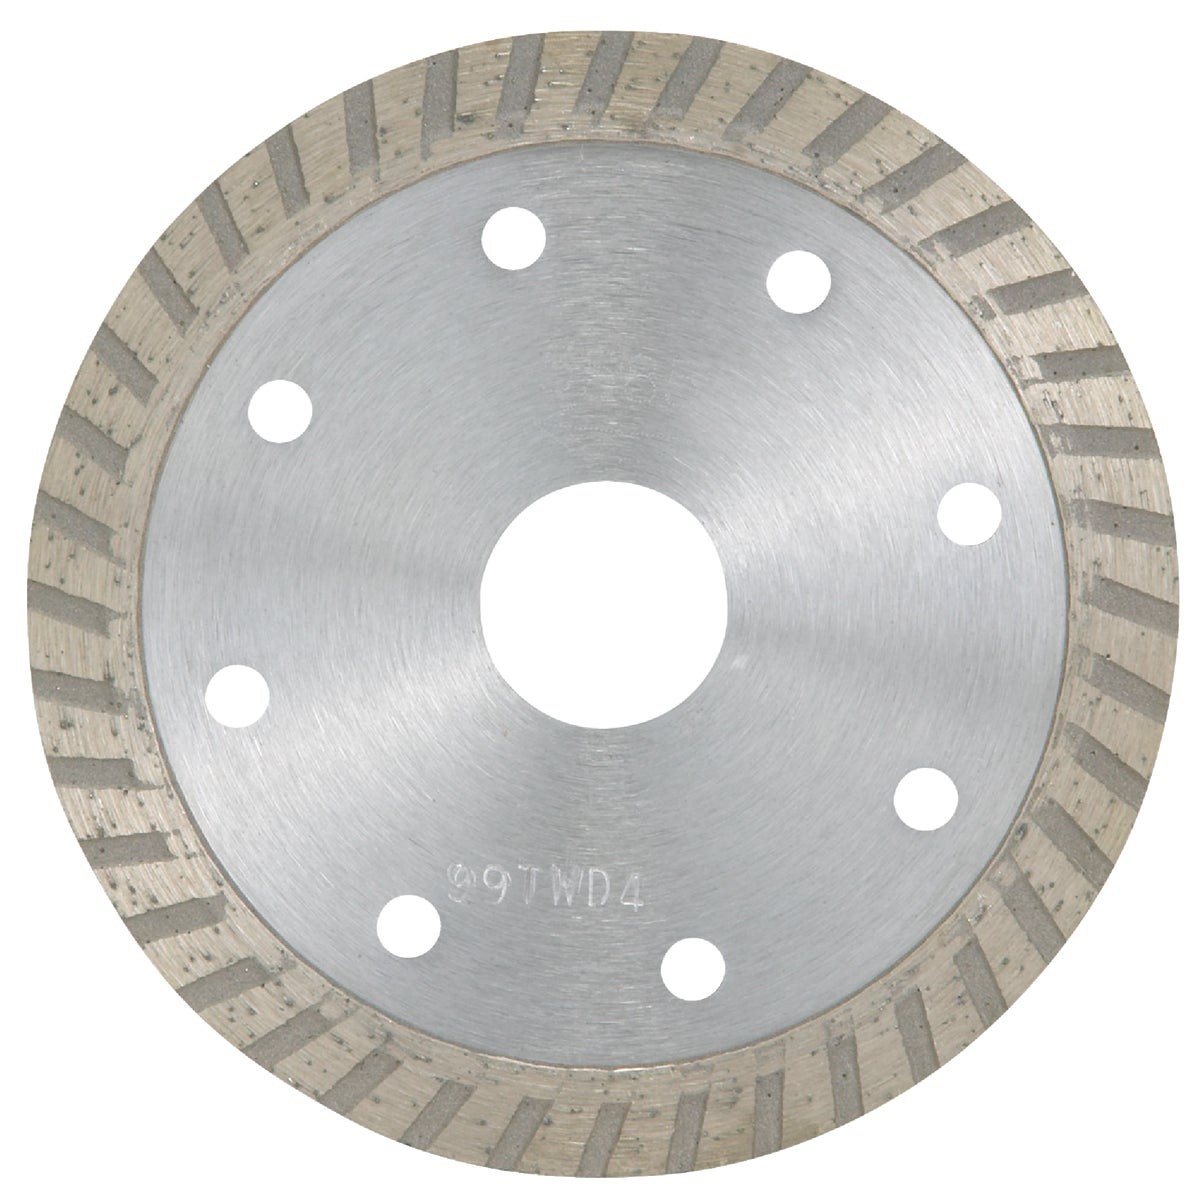 "4"" DIAMOND BLADE - 167020 by M K Diamond Products"